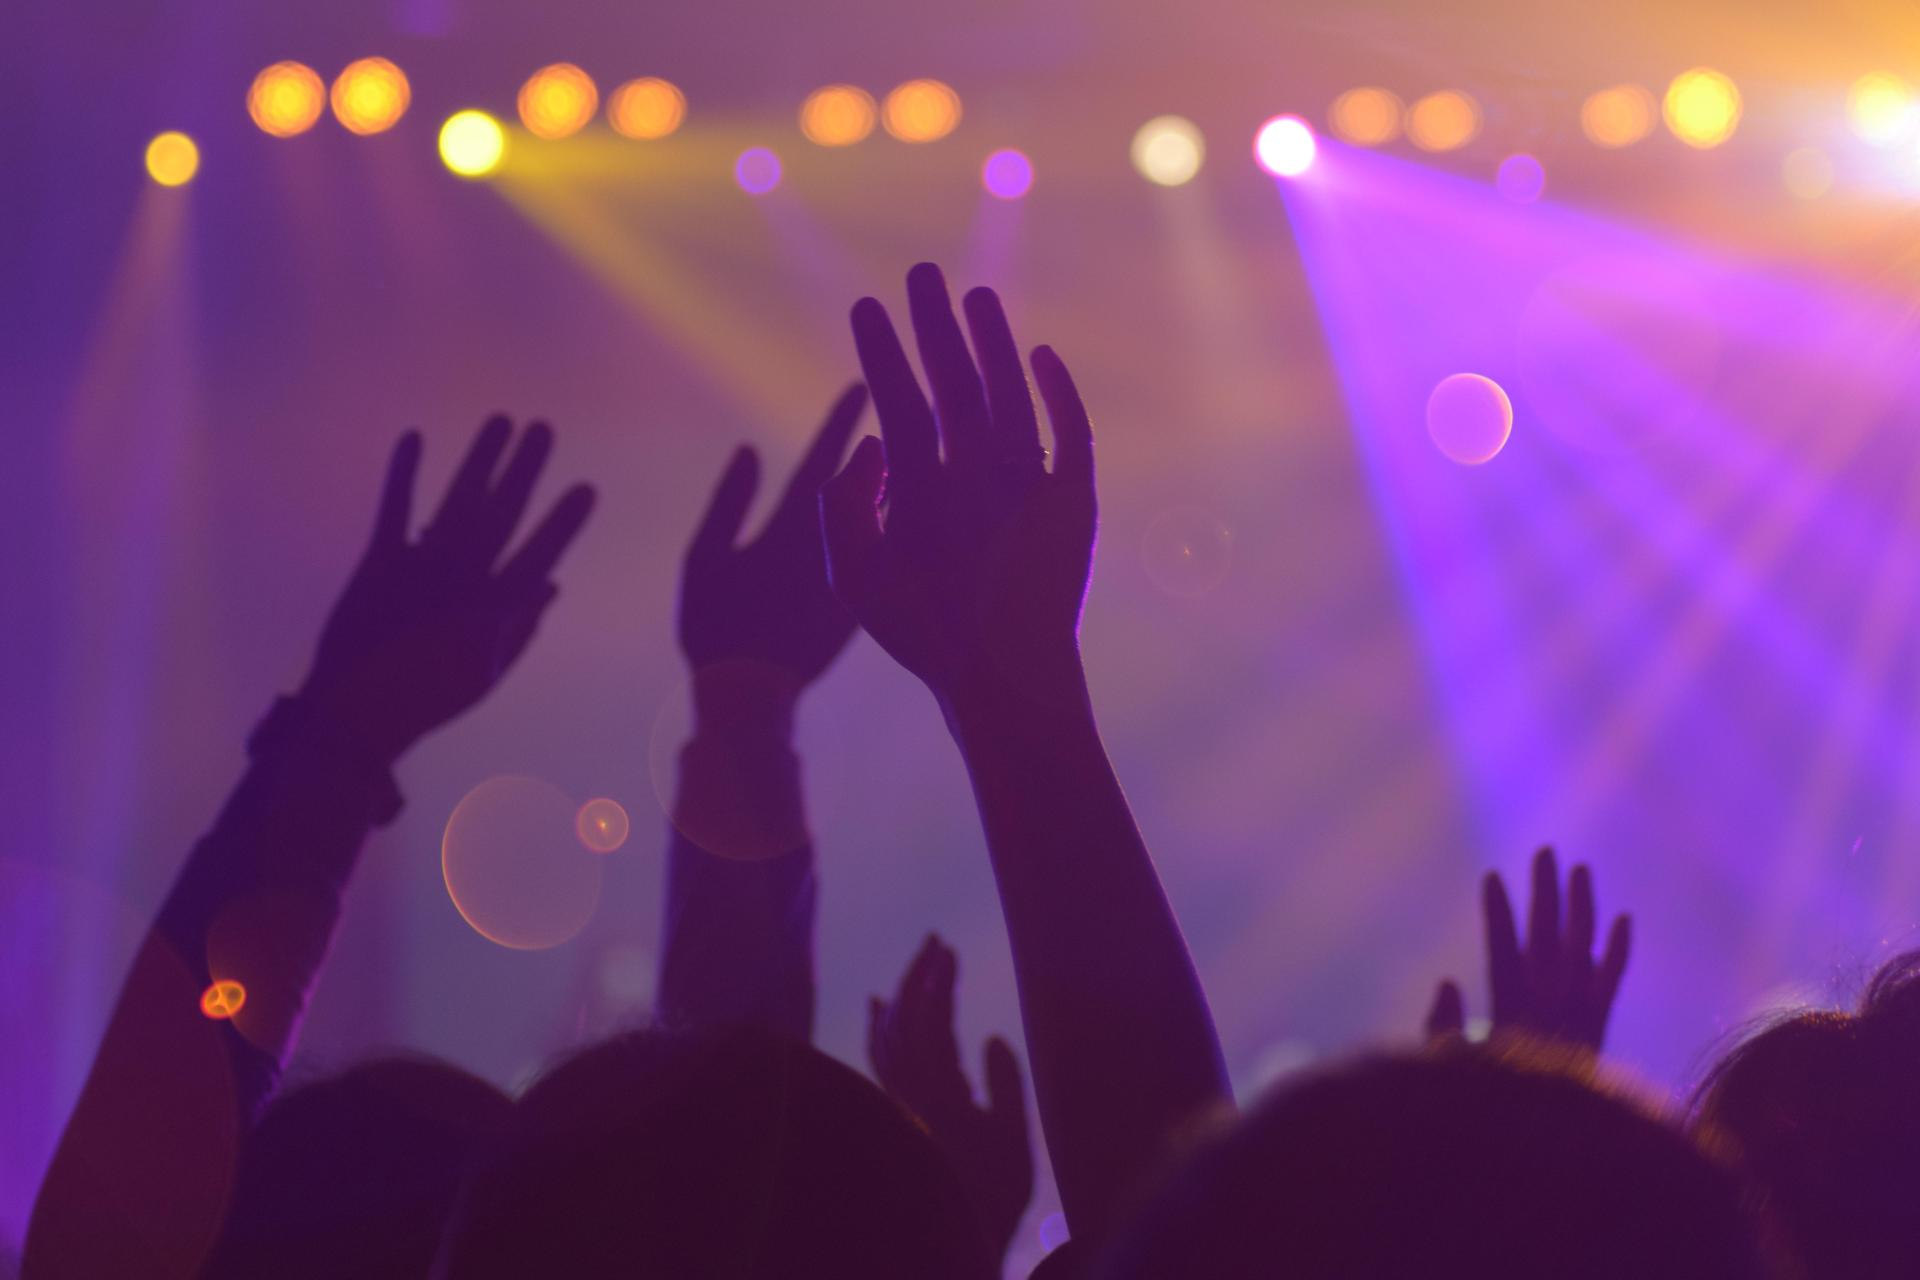 hands in air during concert